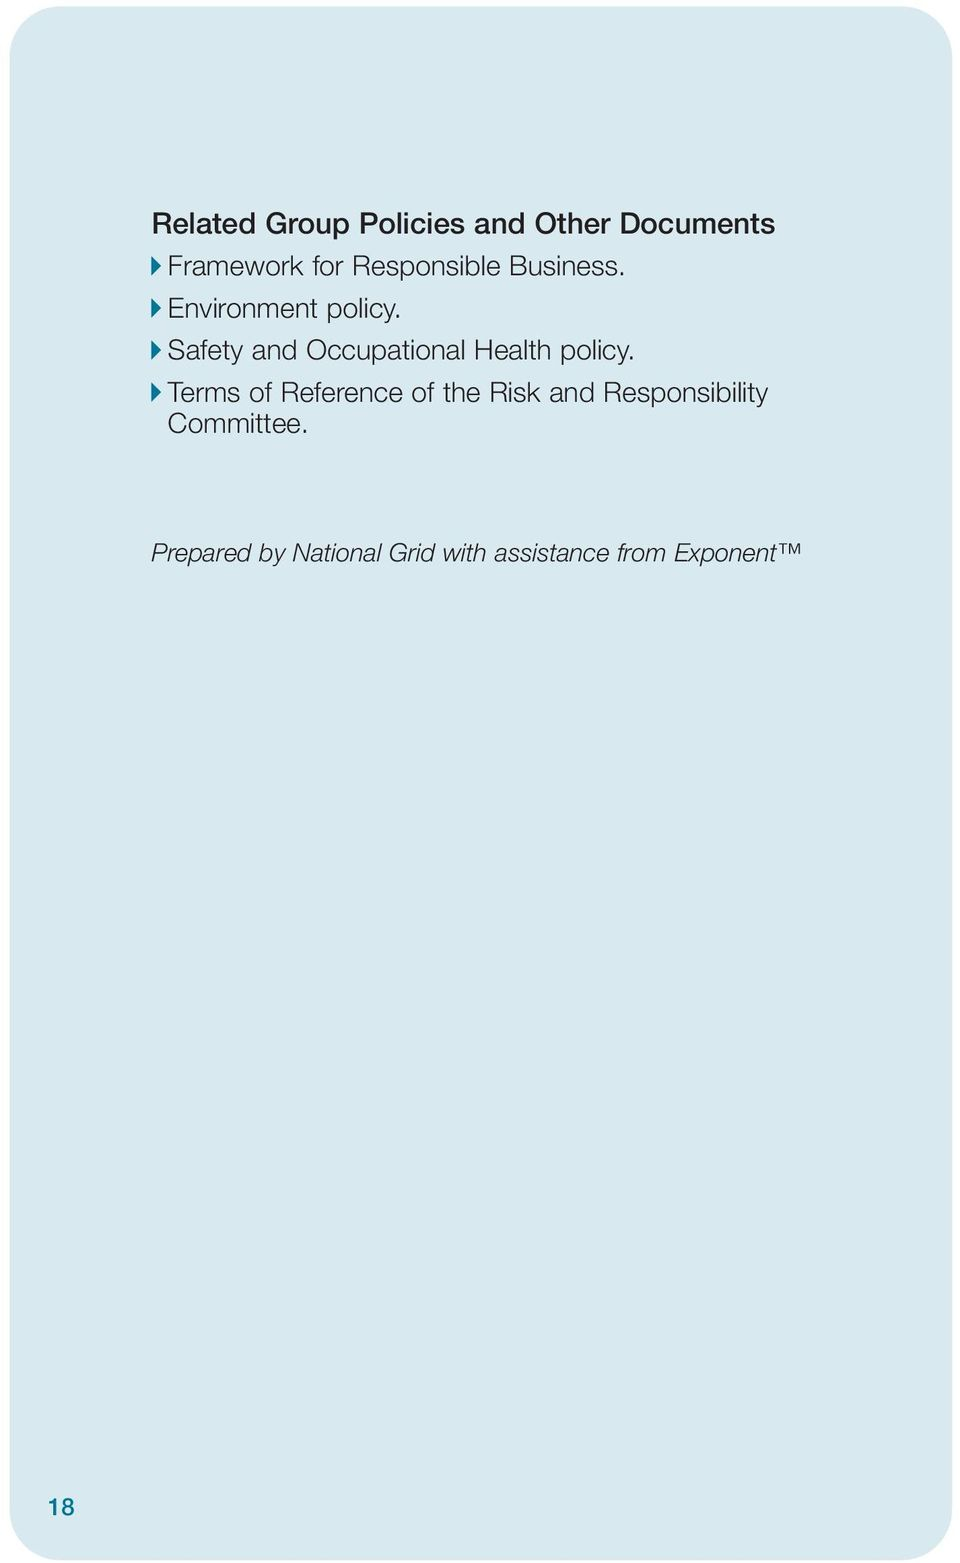 Safety and Occupational Health policy.